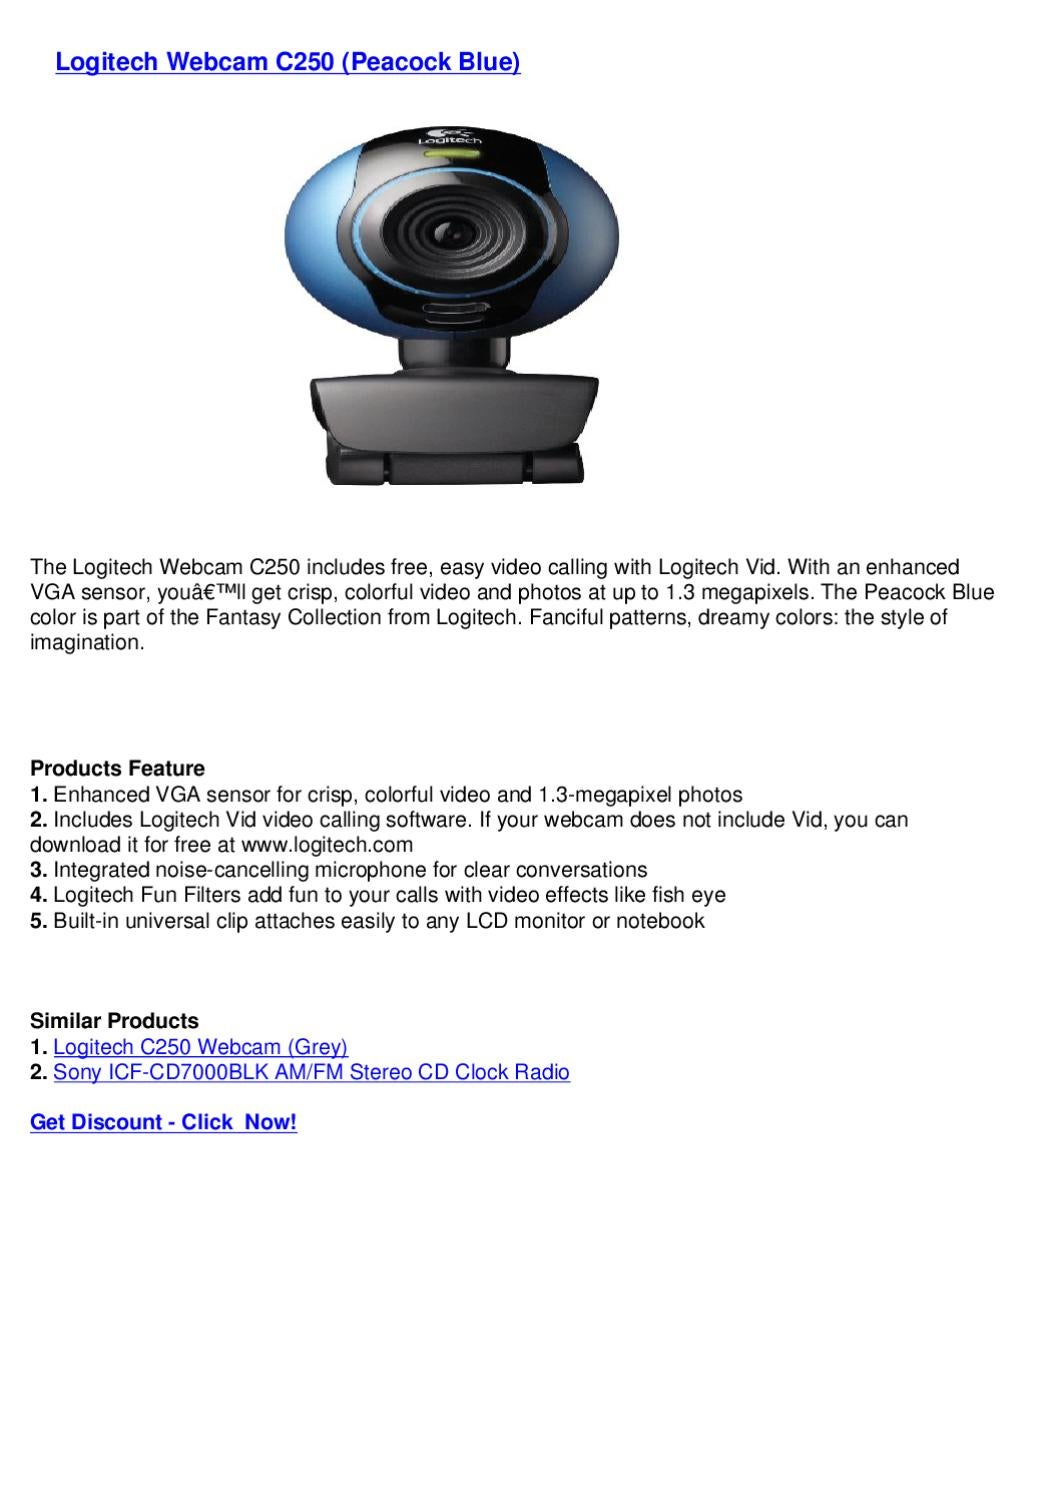 Logitech Webcam C250 Peacock Blue By Webkamm Bkkderla Issuu